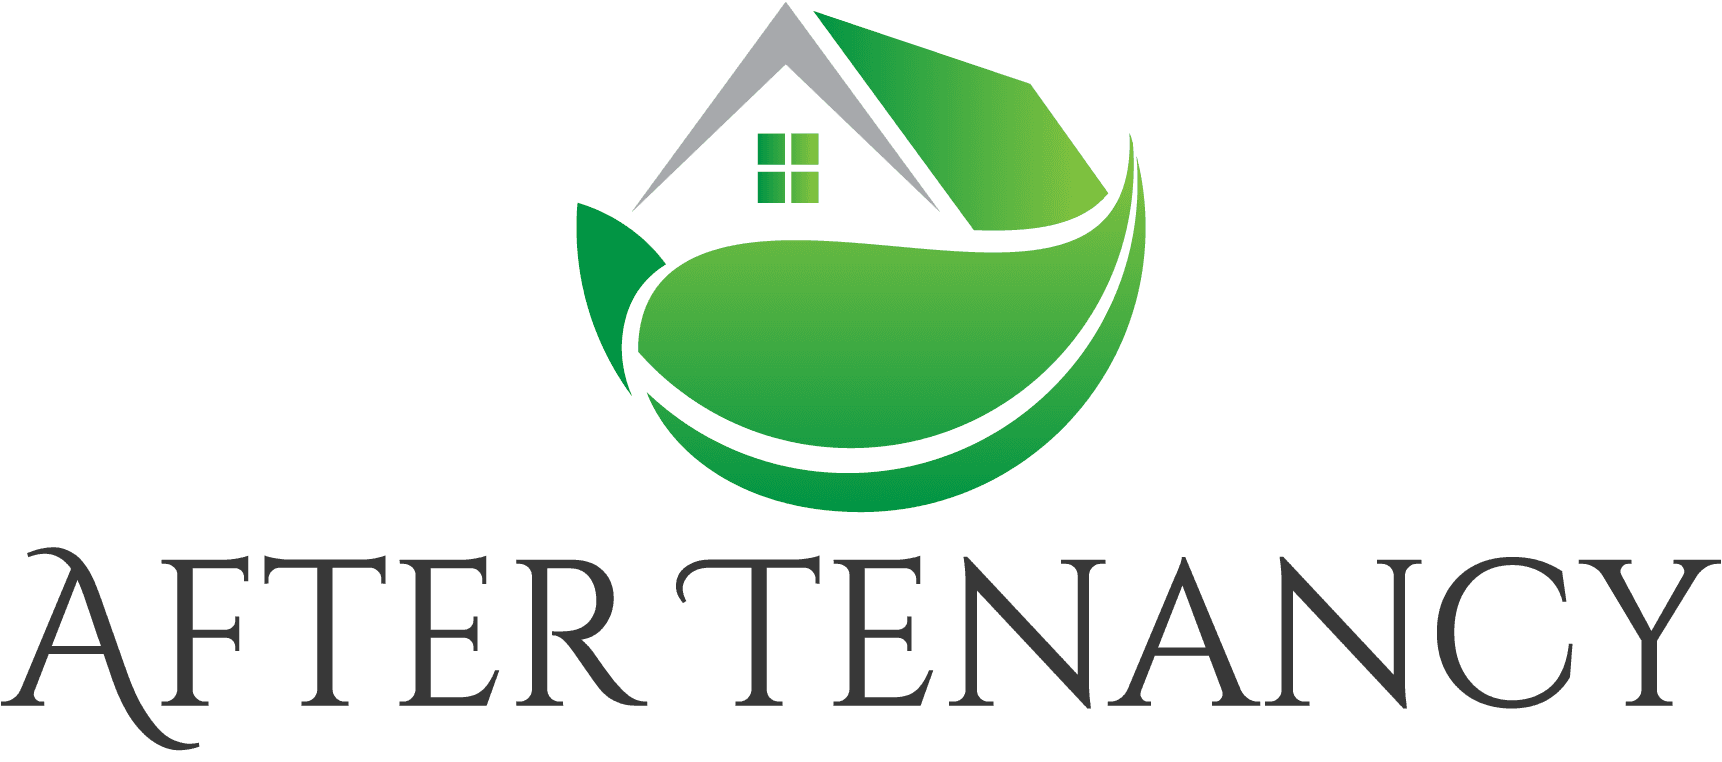 After Tenancy logo